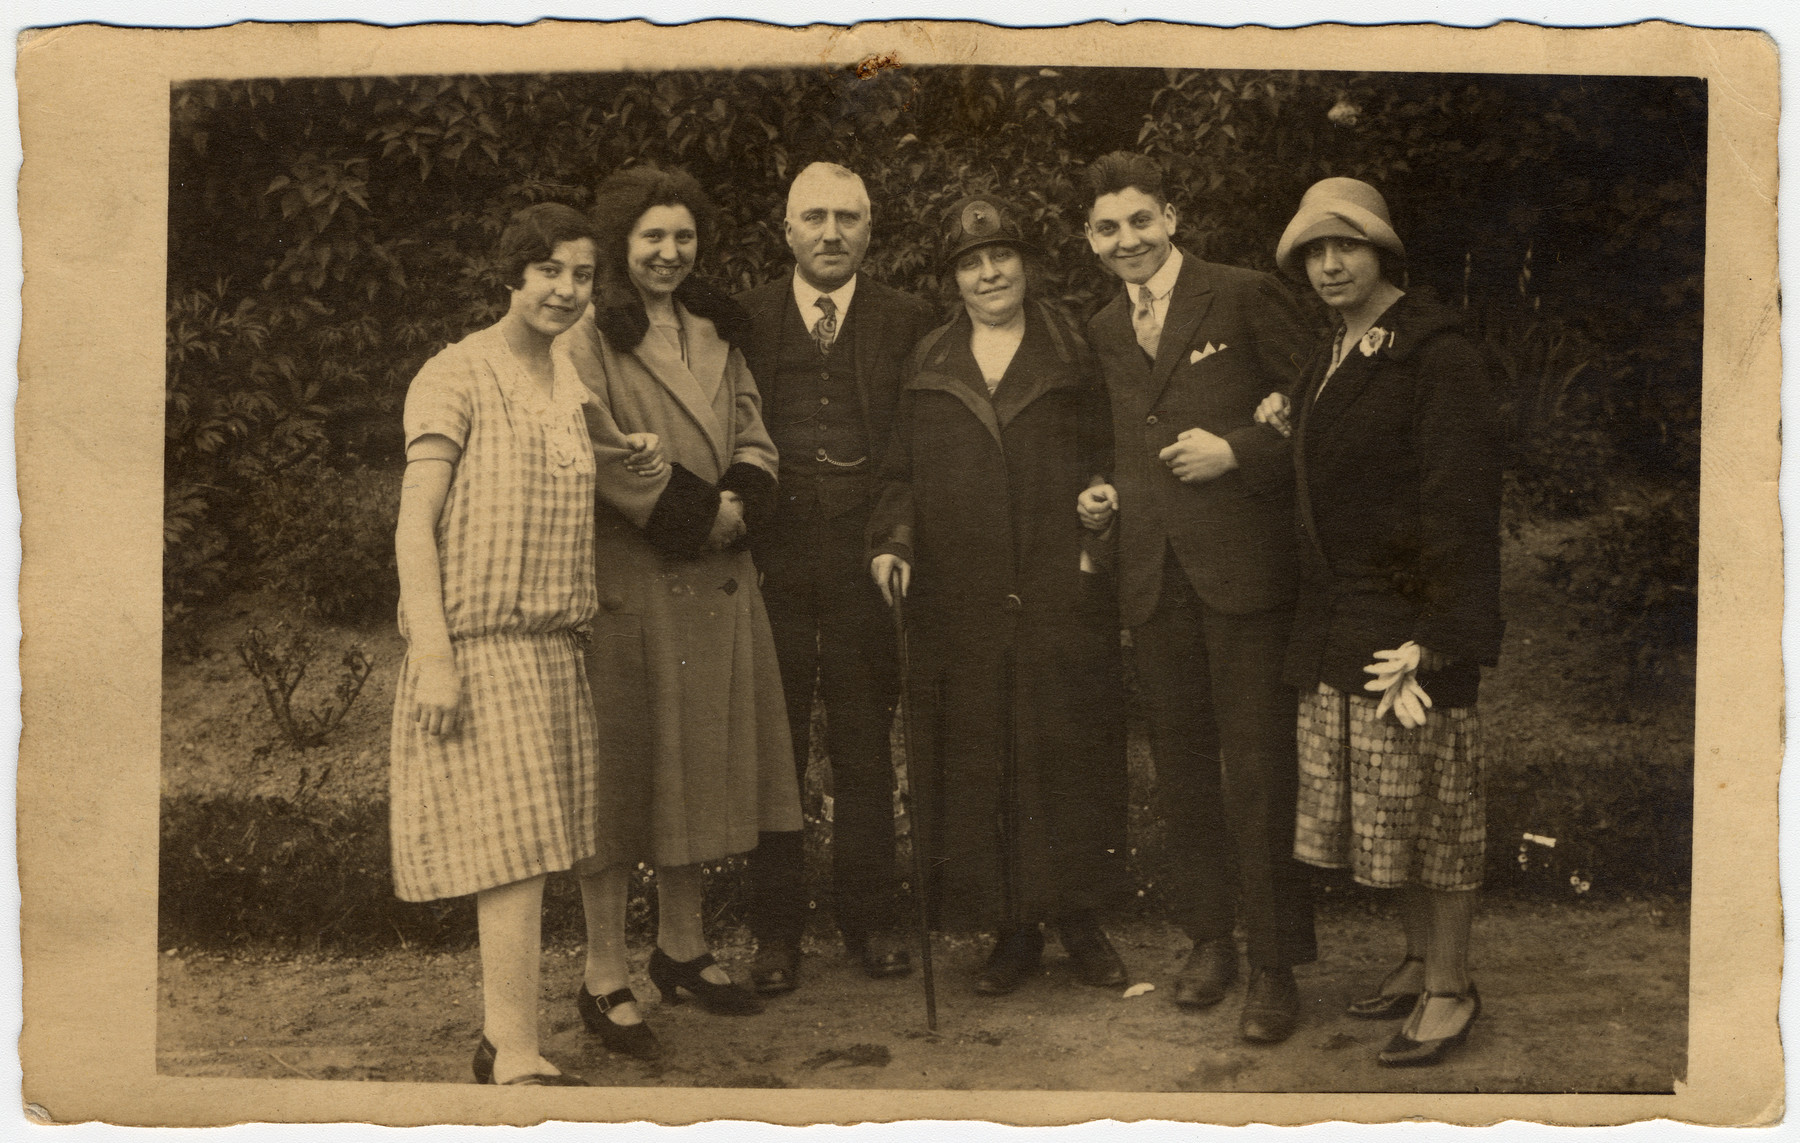 Group portrait of the Mendels family in The Netherlands.  Pictured from left to right are Greta Mendels-Levi (who survived the war in England), Dora Mendels-Spangenthal (who survived the war in an attic in Holland), Maurits Mendels and Rebecca Rosa Meibergen Mendels (who both perished), Siegfried Mendels (who immigrated to Palestine in the 1930s) and Trees (Theresa) Mendels (who was murdered in Sobibor).